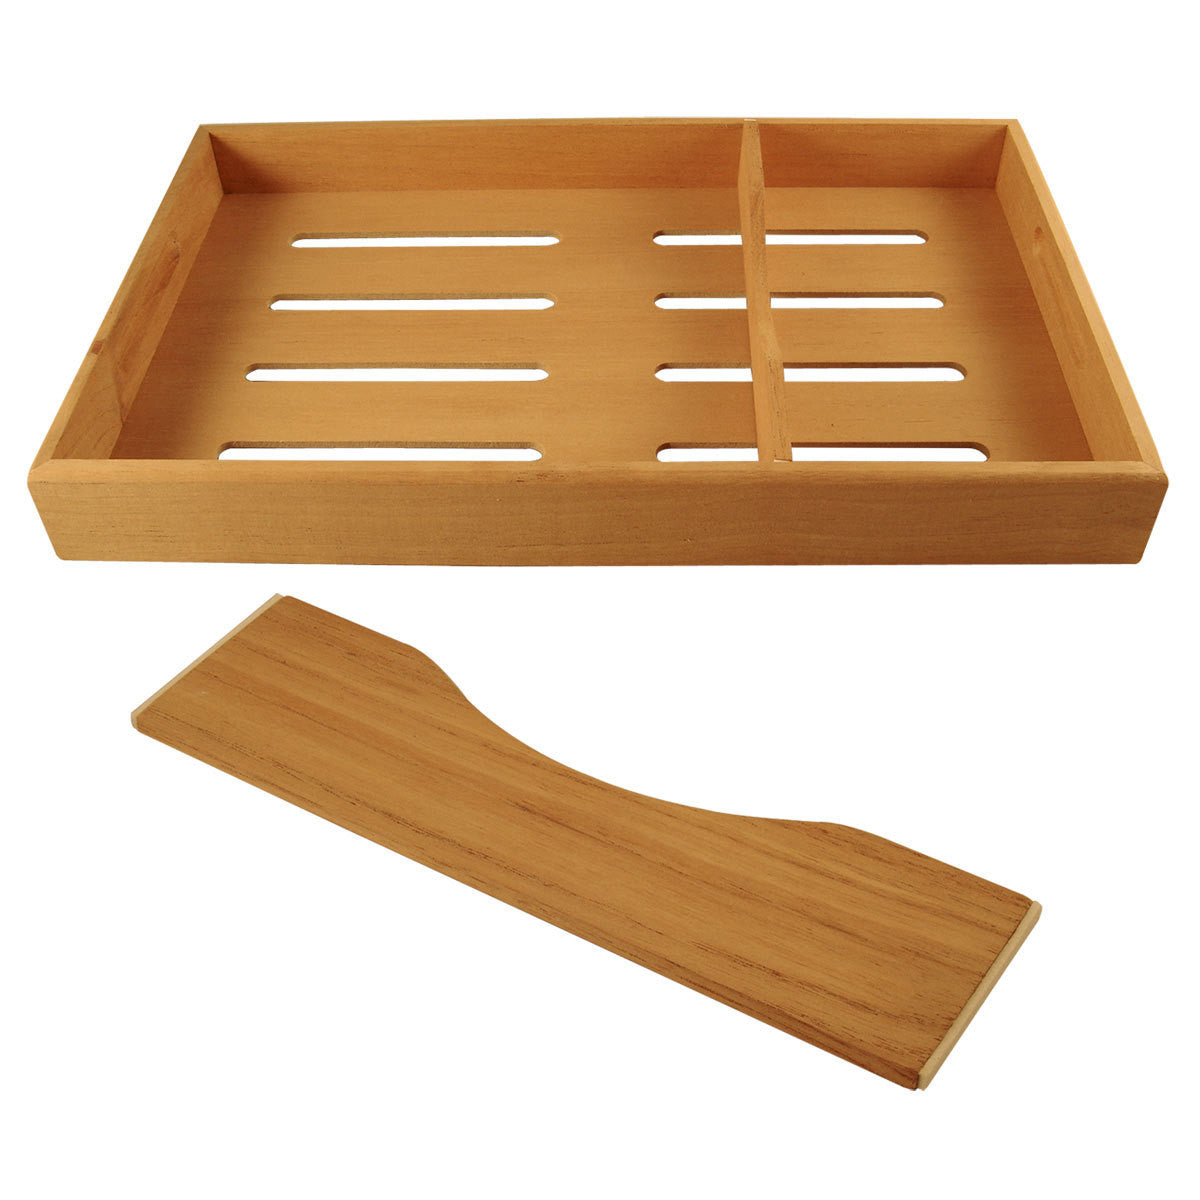 Top Tray Divider for Cuban Elegance Humidor